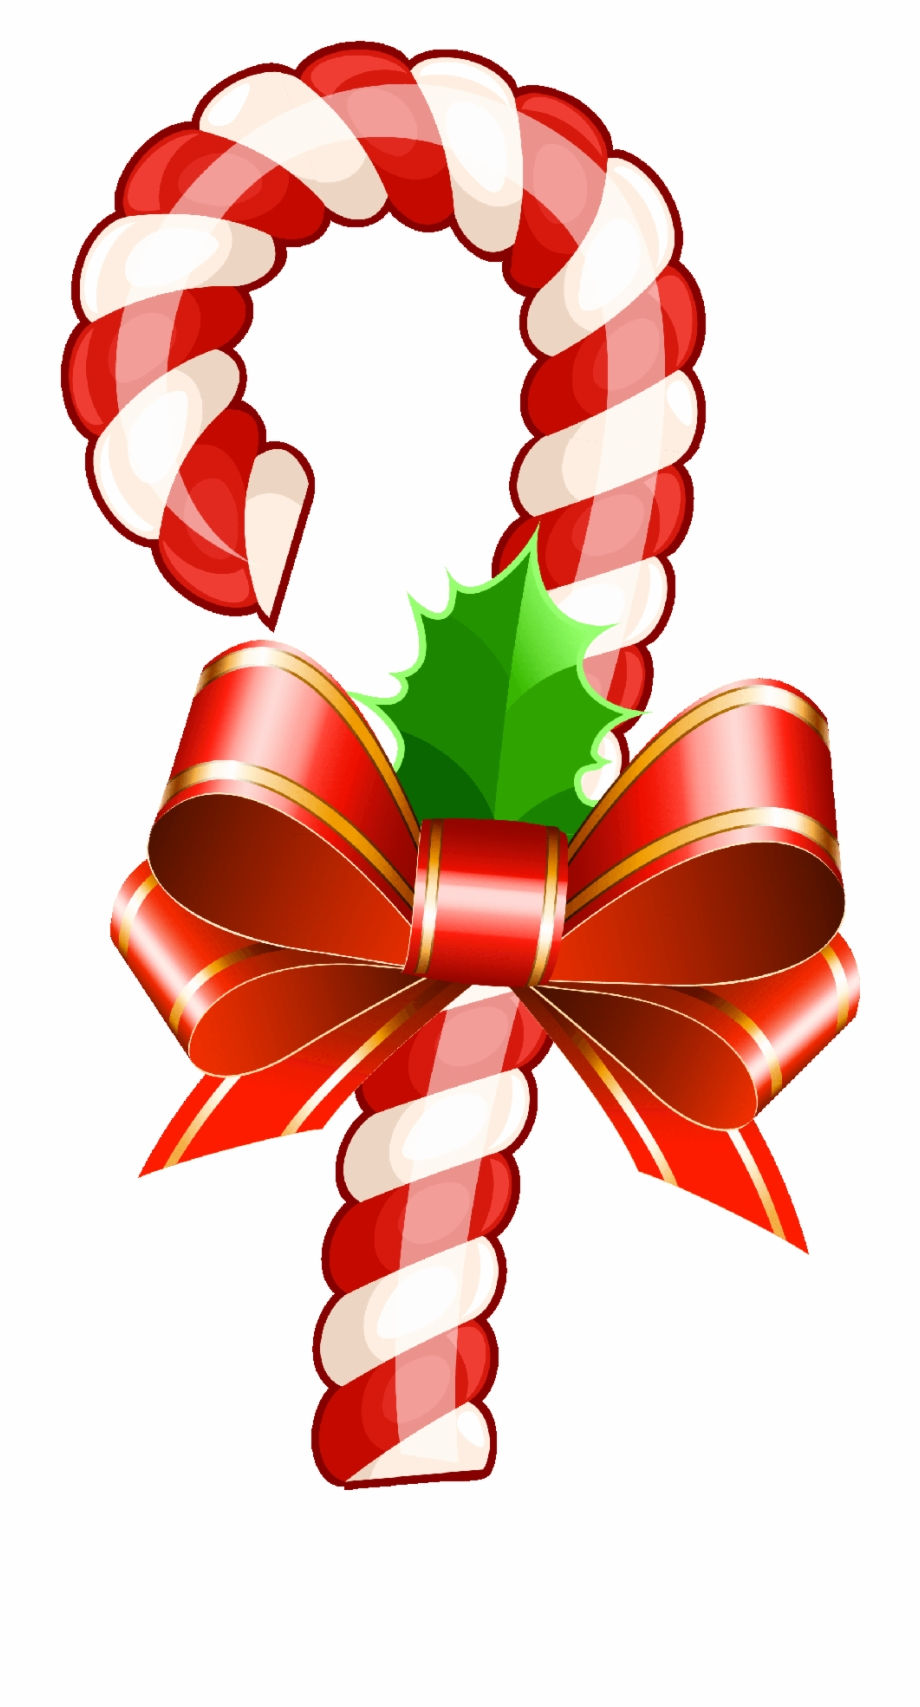 Christmas cane clipart graphic library download Candy Cane Heart Png - Christmas Candy Cane Clipart Png Free PNG ... graphic library download